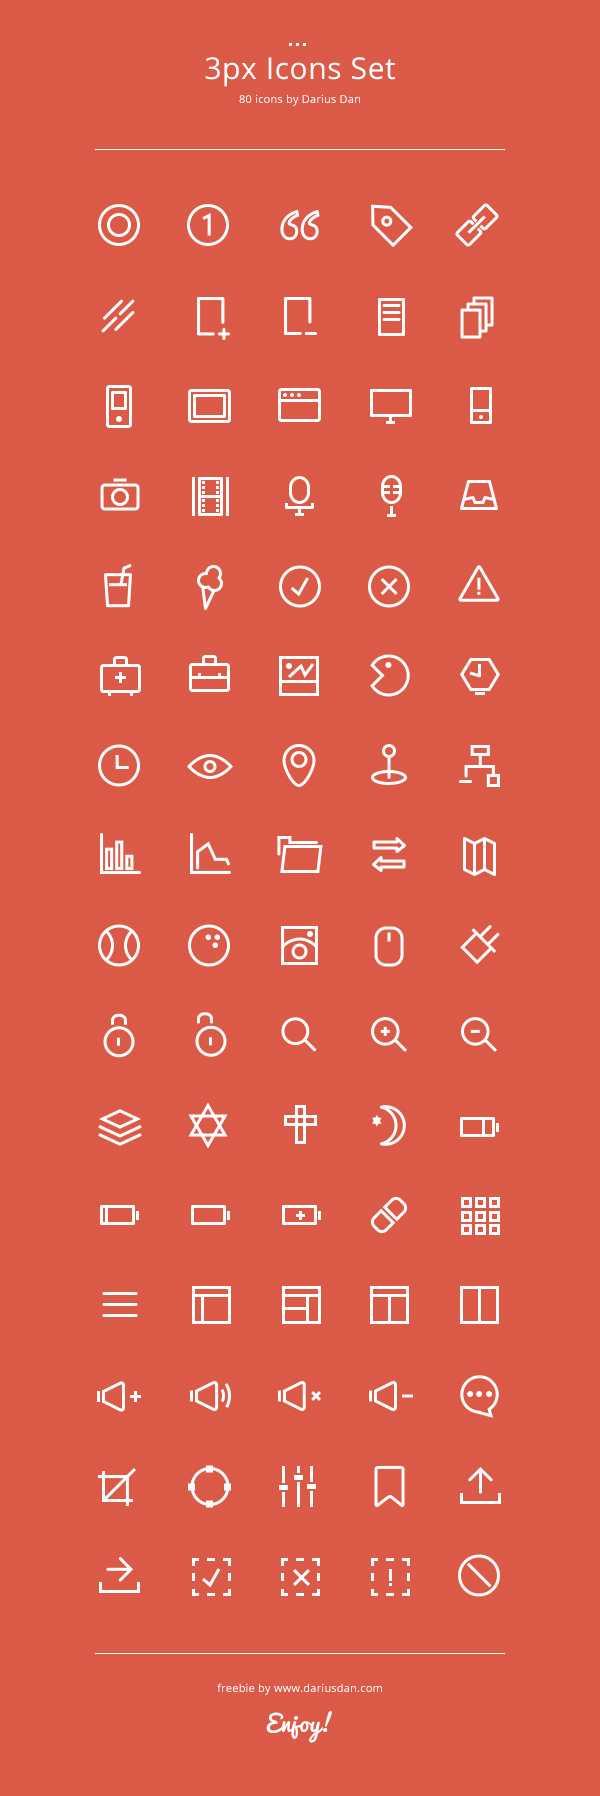 80 3px Icons Set Free PSD Web Resources, Web Elements, unique, Stylish, Resources, Quality, PSD Icons, PSD file, PSD, Pixel Icons, Pixel Icon, pixel, Photoshop, path, pack, outline, original, new, Modern, Mini Icons, Mini, Layered PSD, Icons, Icon PSD, Icon, Graphics, Fresh, Freebies, Free Resources, Free PSD, Free Icons, Free Icon, free download, Free, Elements, download free psd, Download, detailed, Design, Creative, Clean, Adobe Photoshop, 3px,